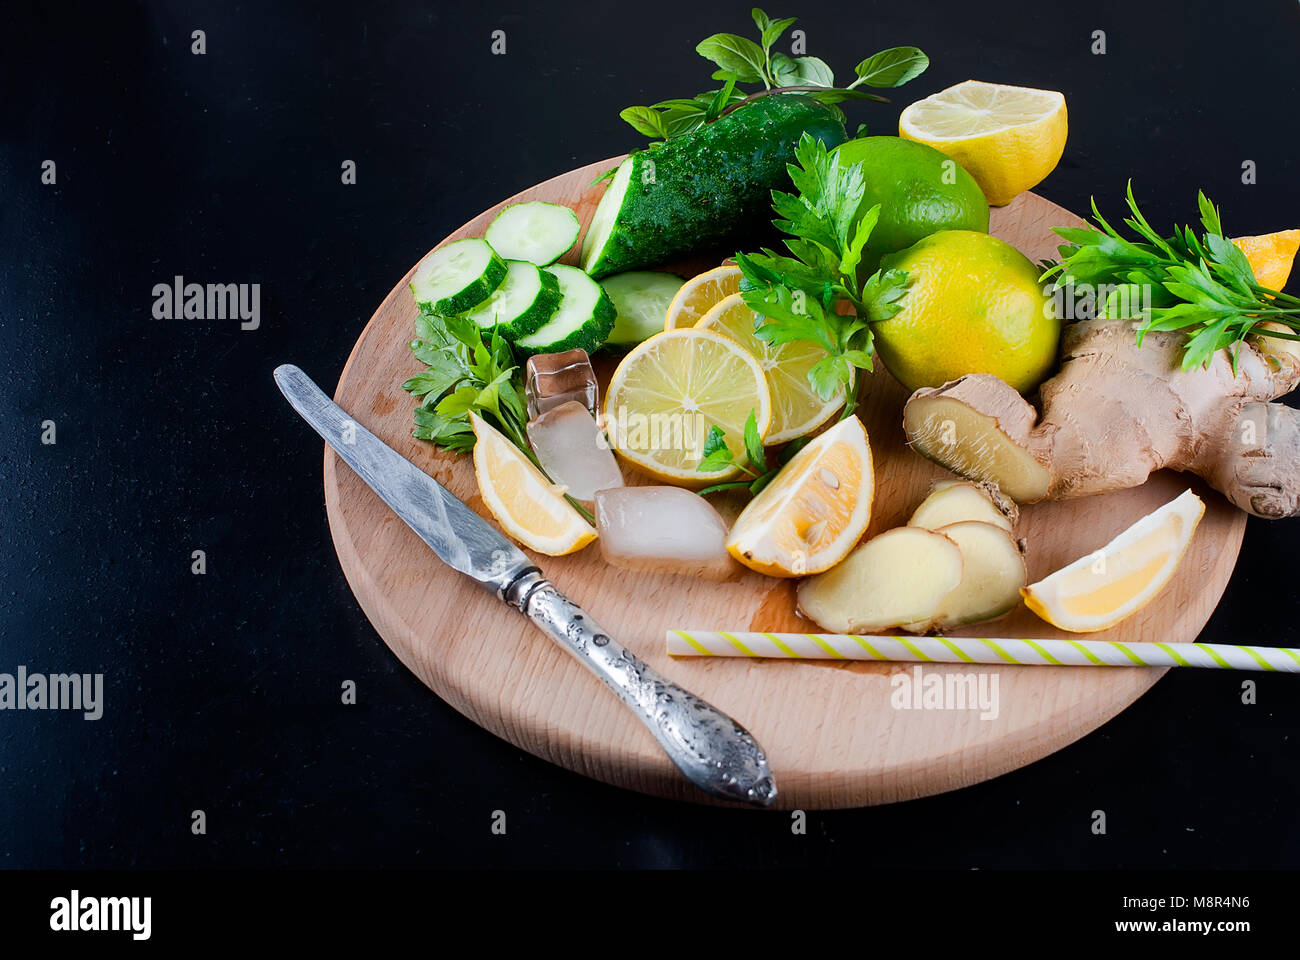 ingredients for refreshing cucumber cocktail, lemonade, detox water on a black background. Top view. Copy space. - Stock Image